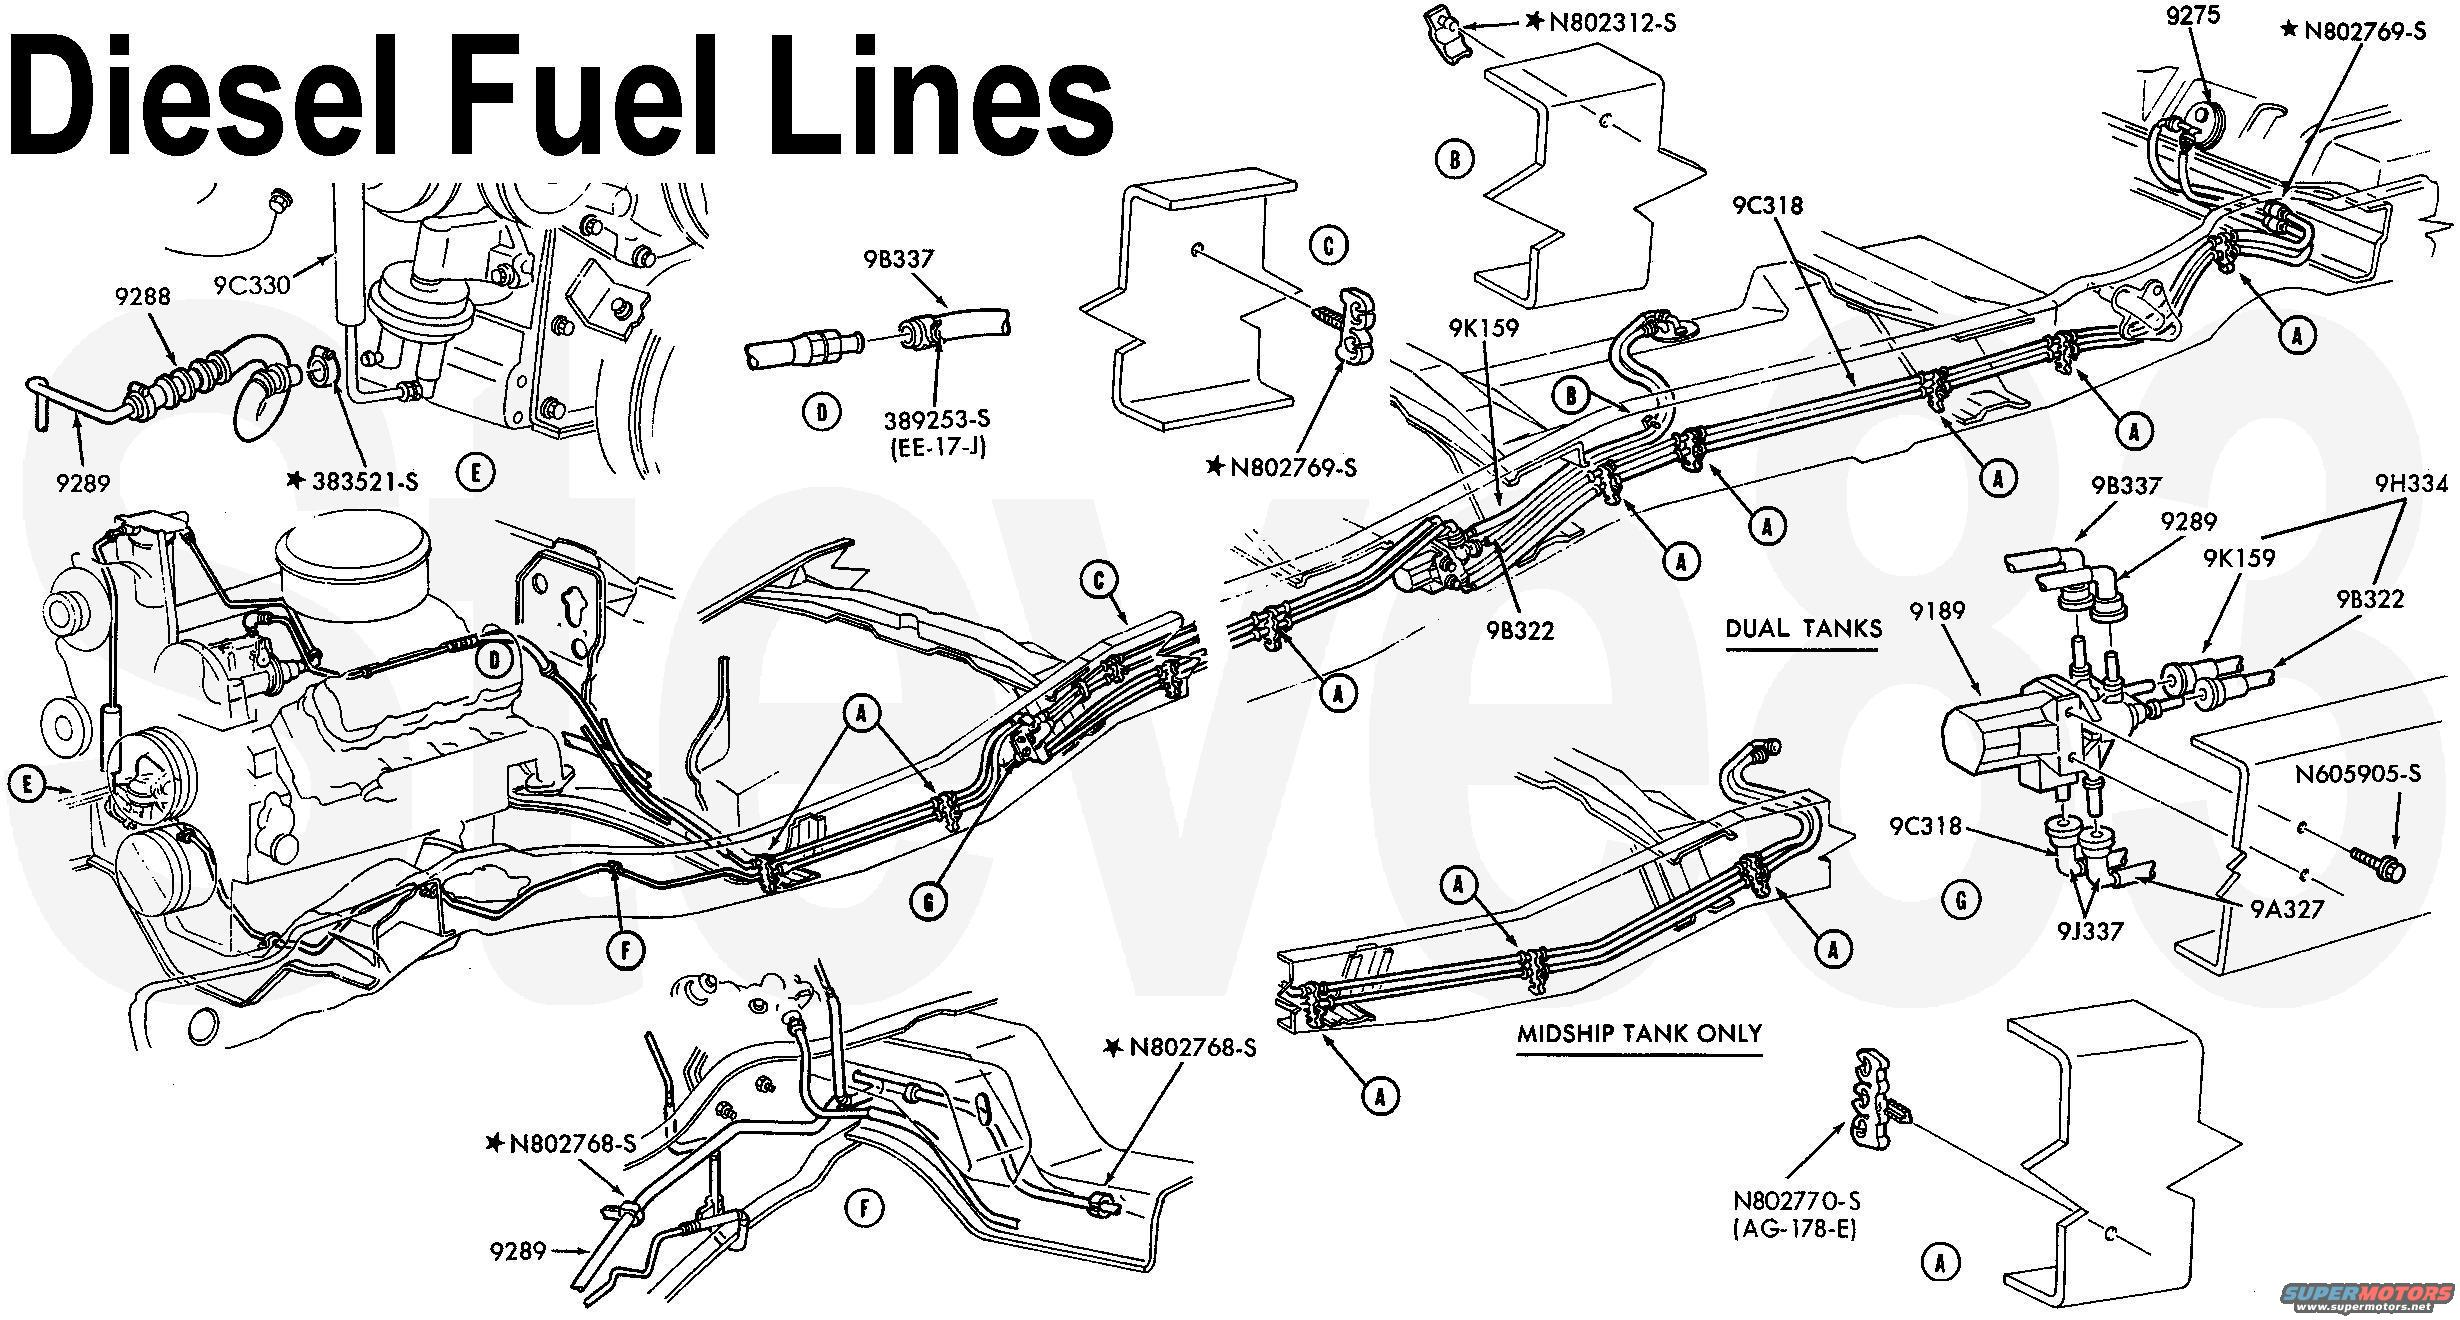 95 7.3 Fuel System Diagram / 1997 Ford F 350 Fuel System